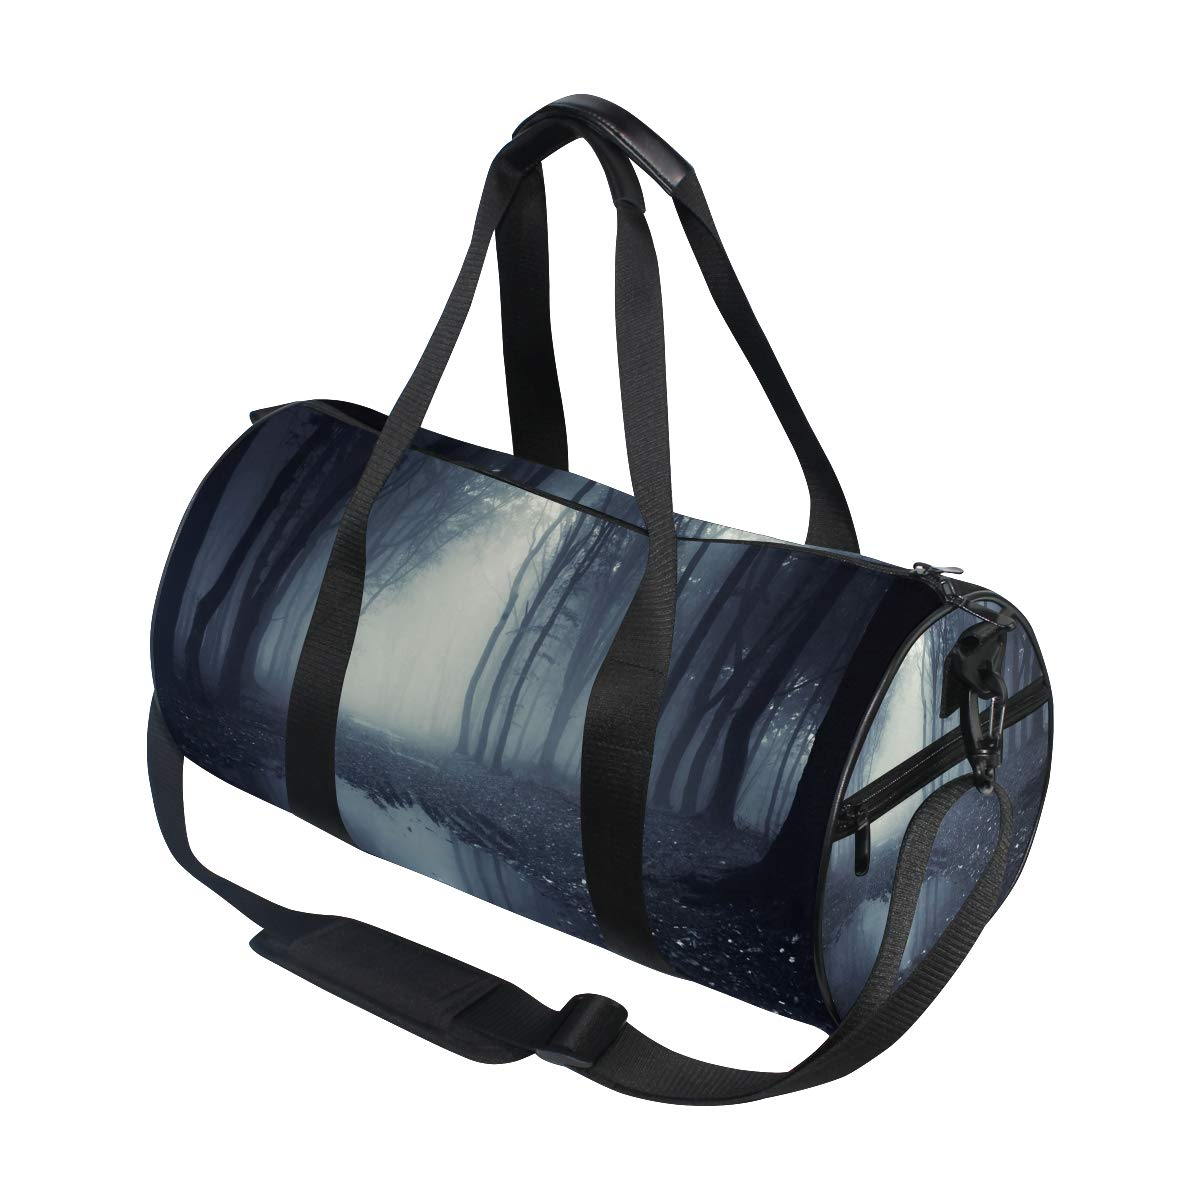 Sports Gym Bag Travel Duffel Bag with Pockets Luggage & Travel Gear Shoulder Strap Fitness Bag by EVERUI (Image #3)